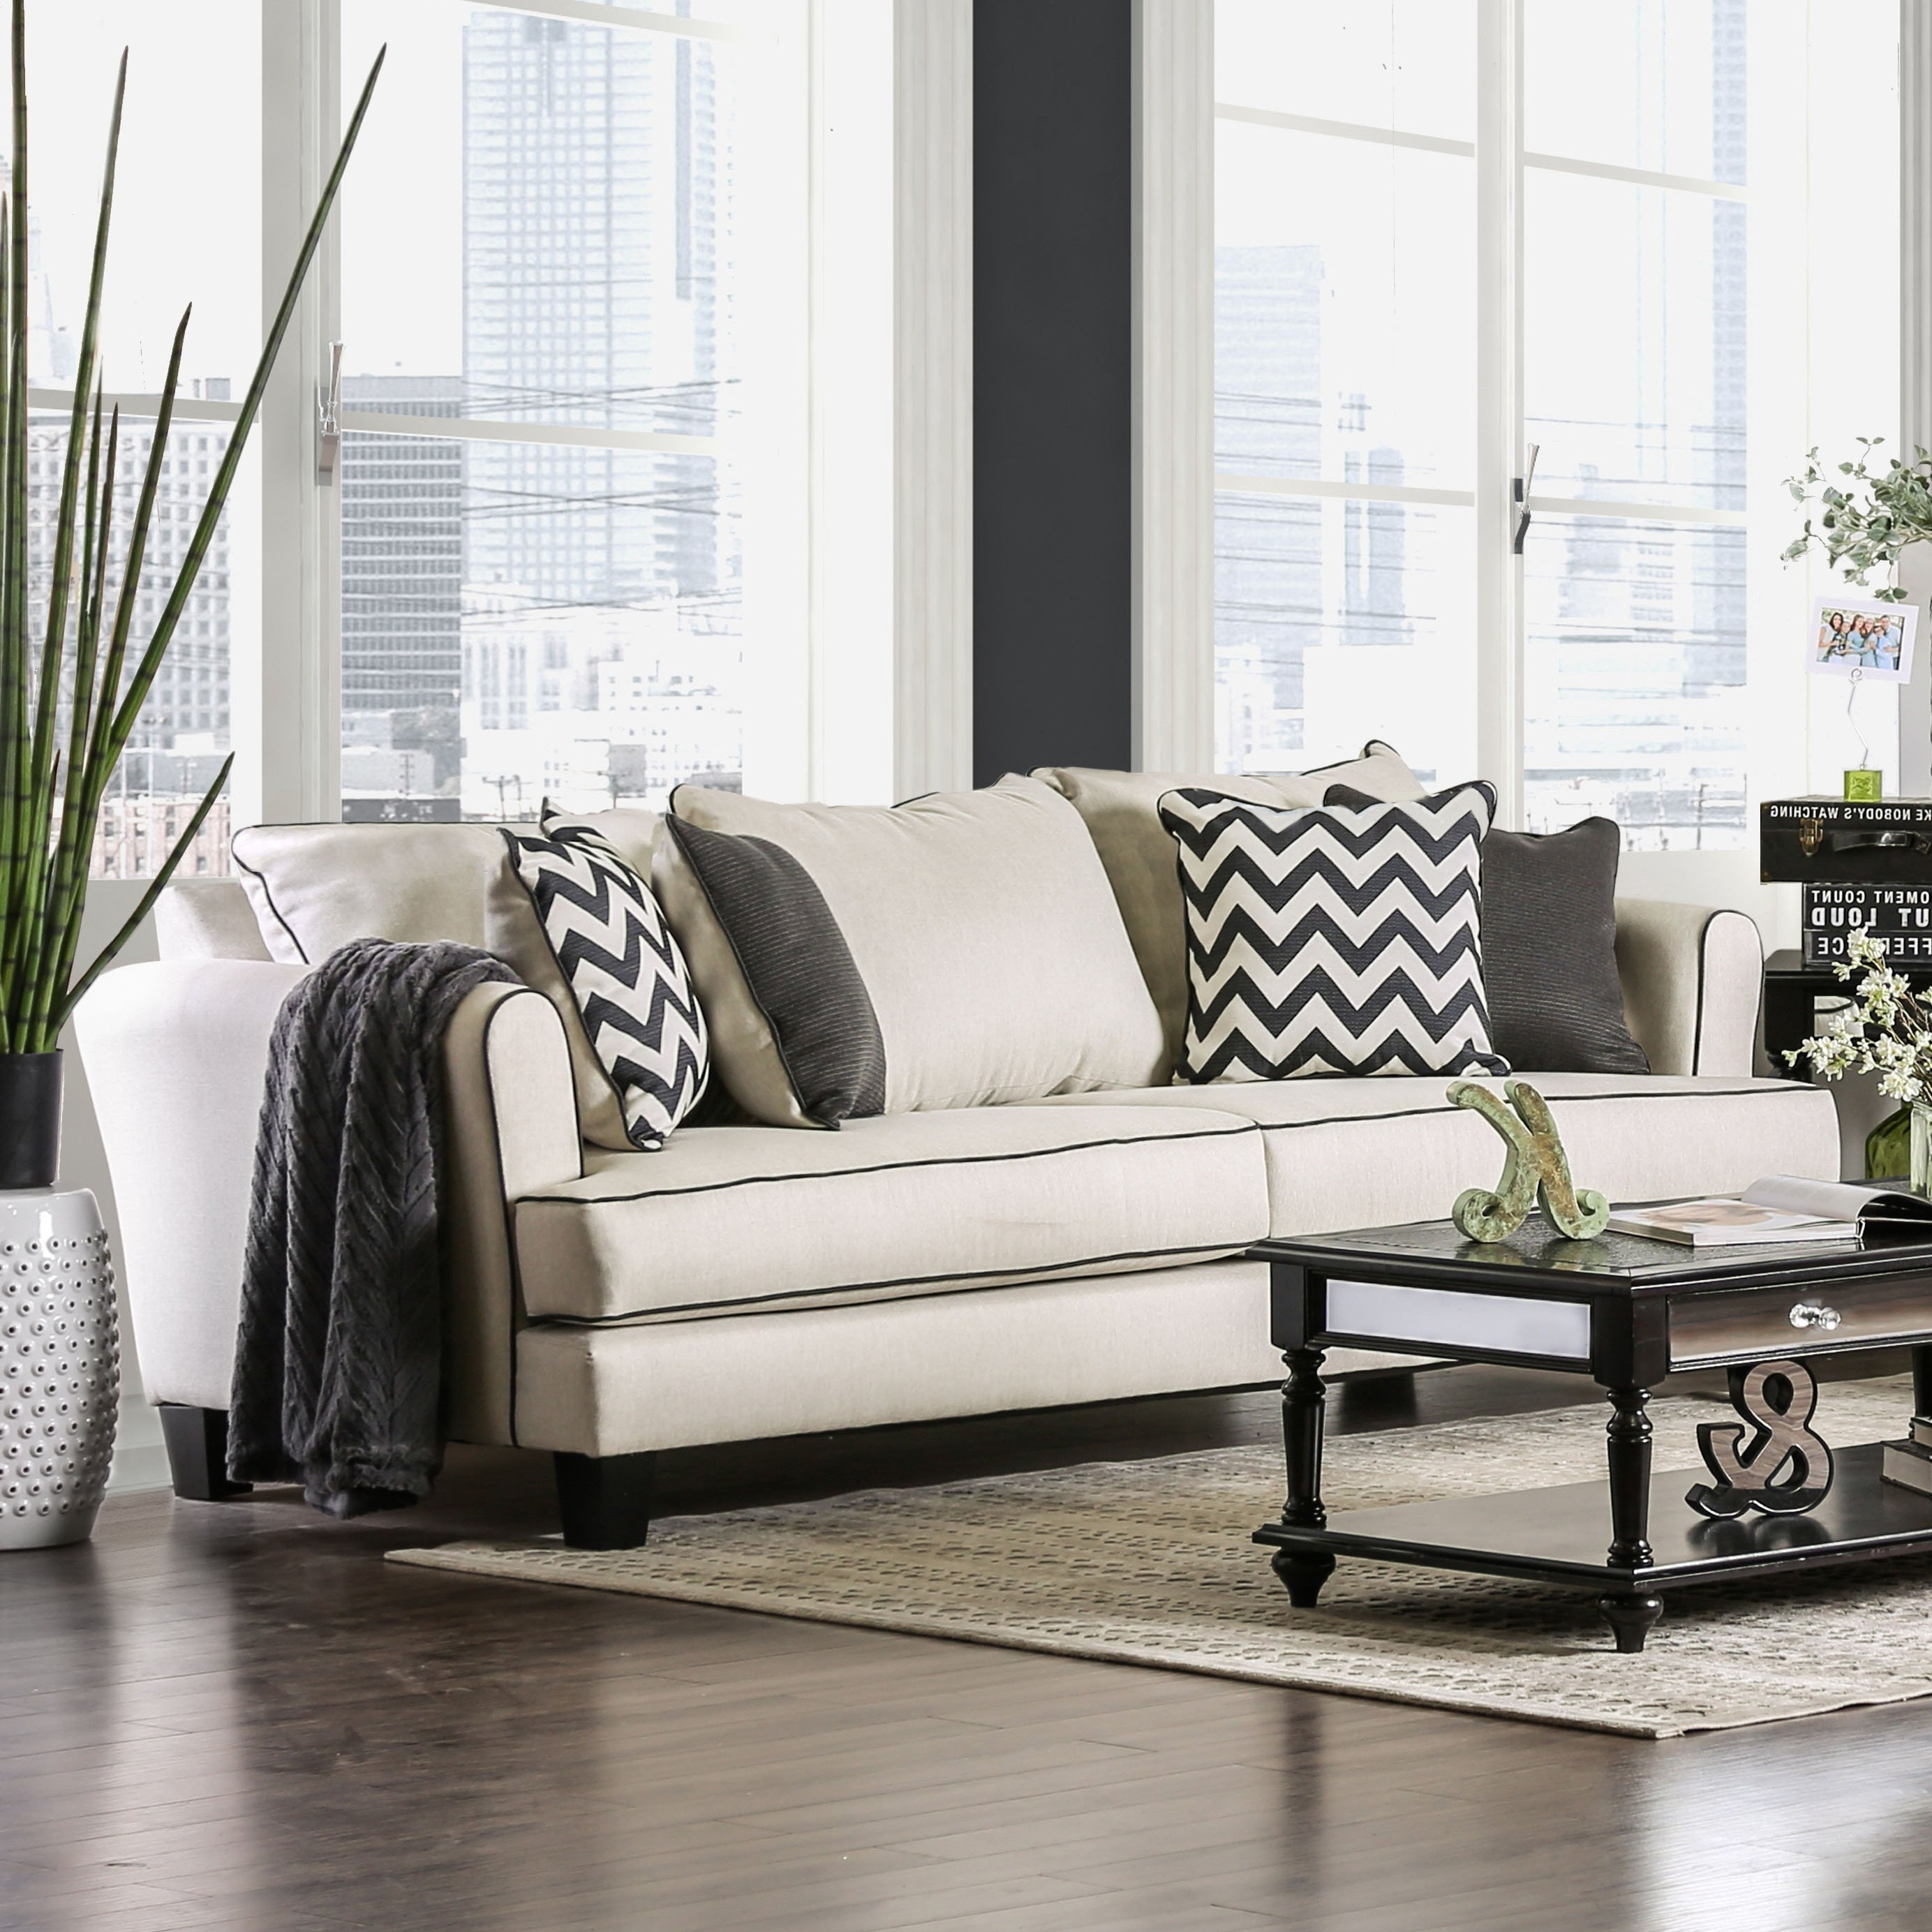 Macie Side Chairs For Favorite Macie Contemporary Off White Fabric Chevron T Cushion Sofa Furniture (View 12 of 20)